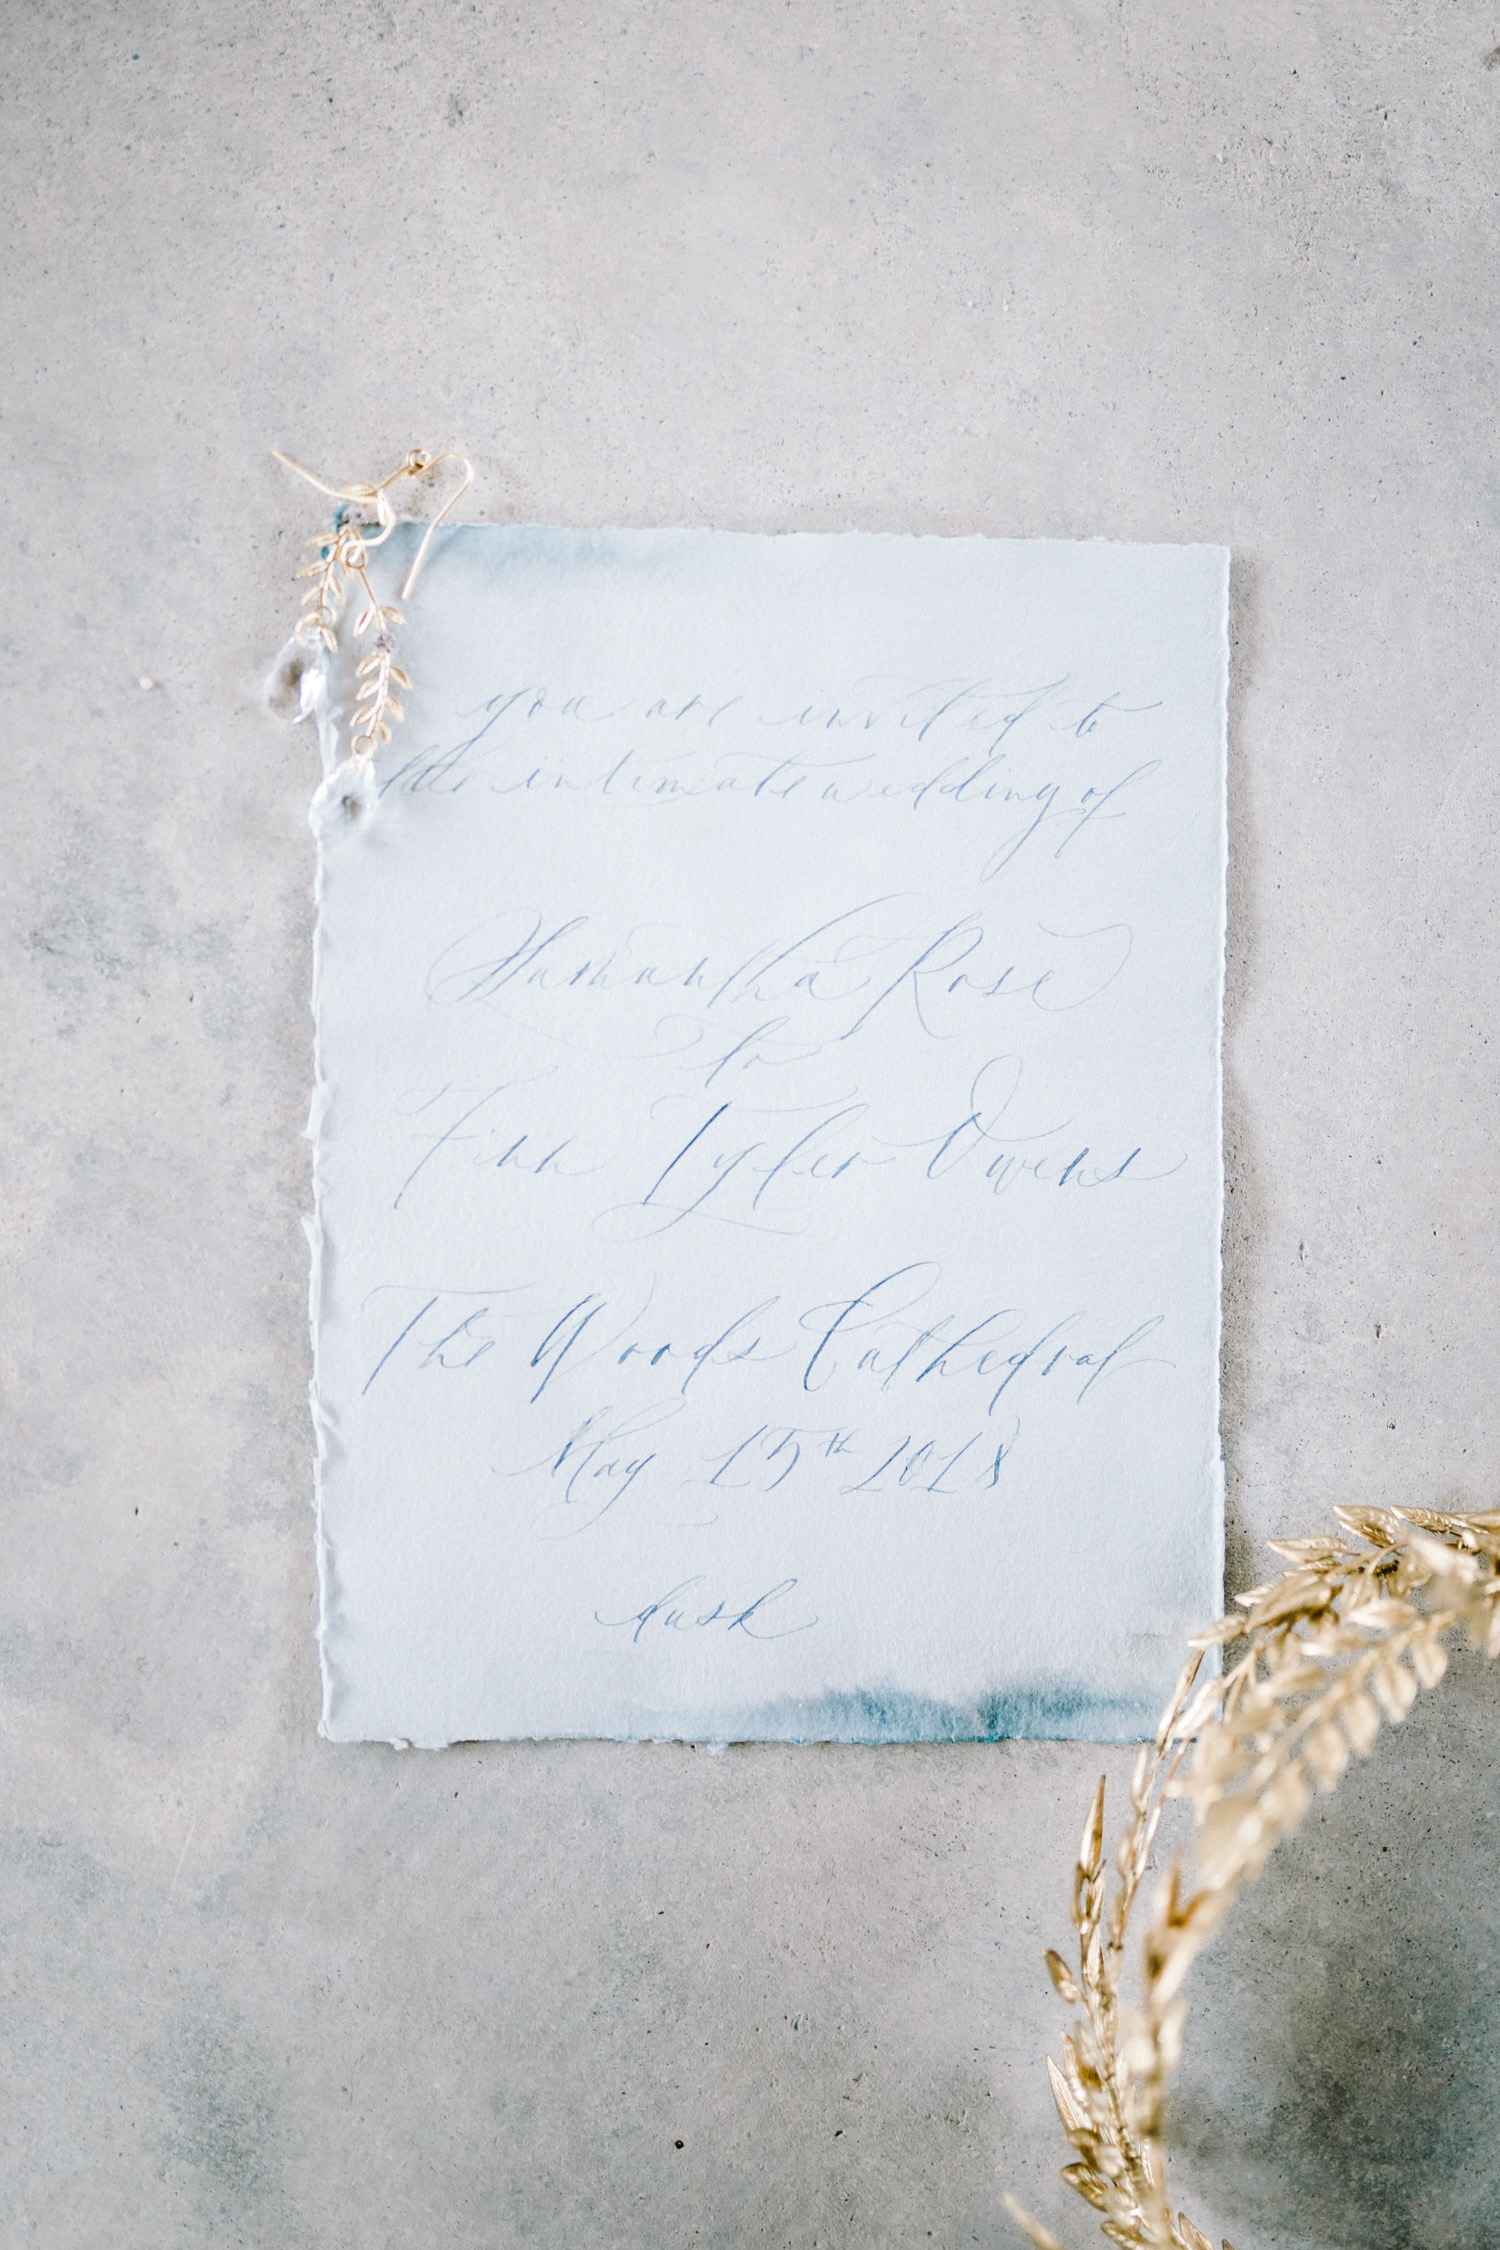 A blue watercolor and calligraphy handmade paper wedding invitation for a destination wedding in an abandoned cathedral, a few pieces of gold wedding jewelry nearby